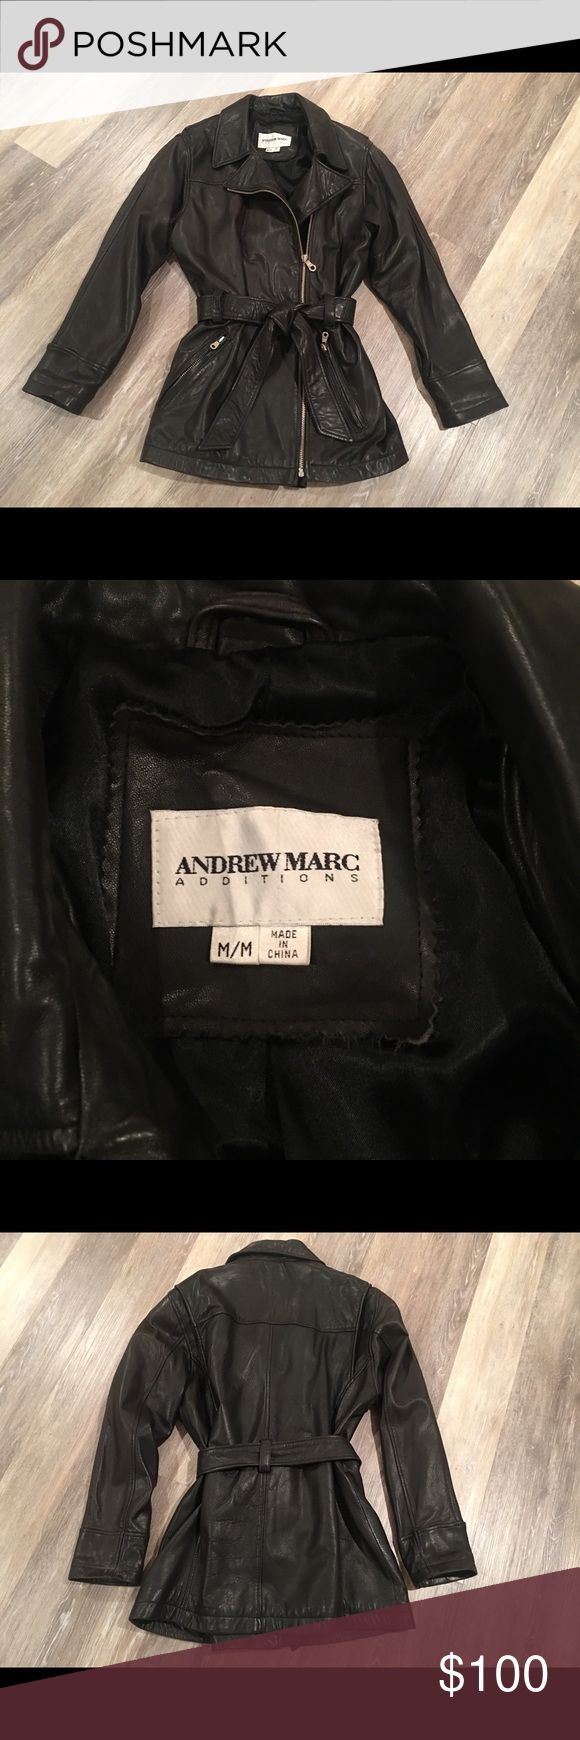 "Vintage Andrew Marc Leather Jacket Vintage Andrew Marc Leather Jacket. Buttery soft feel. Size medium...fits on the larger size as it was bought in the late 80's when clothing was worn that way. (This trend is back in style now) Length approx 29 in"".  Shoulder to shoulder approx 17"". Excellent condition. Andrew Marc Jackets & Coats"